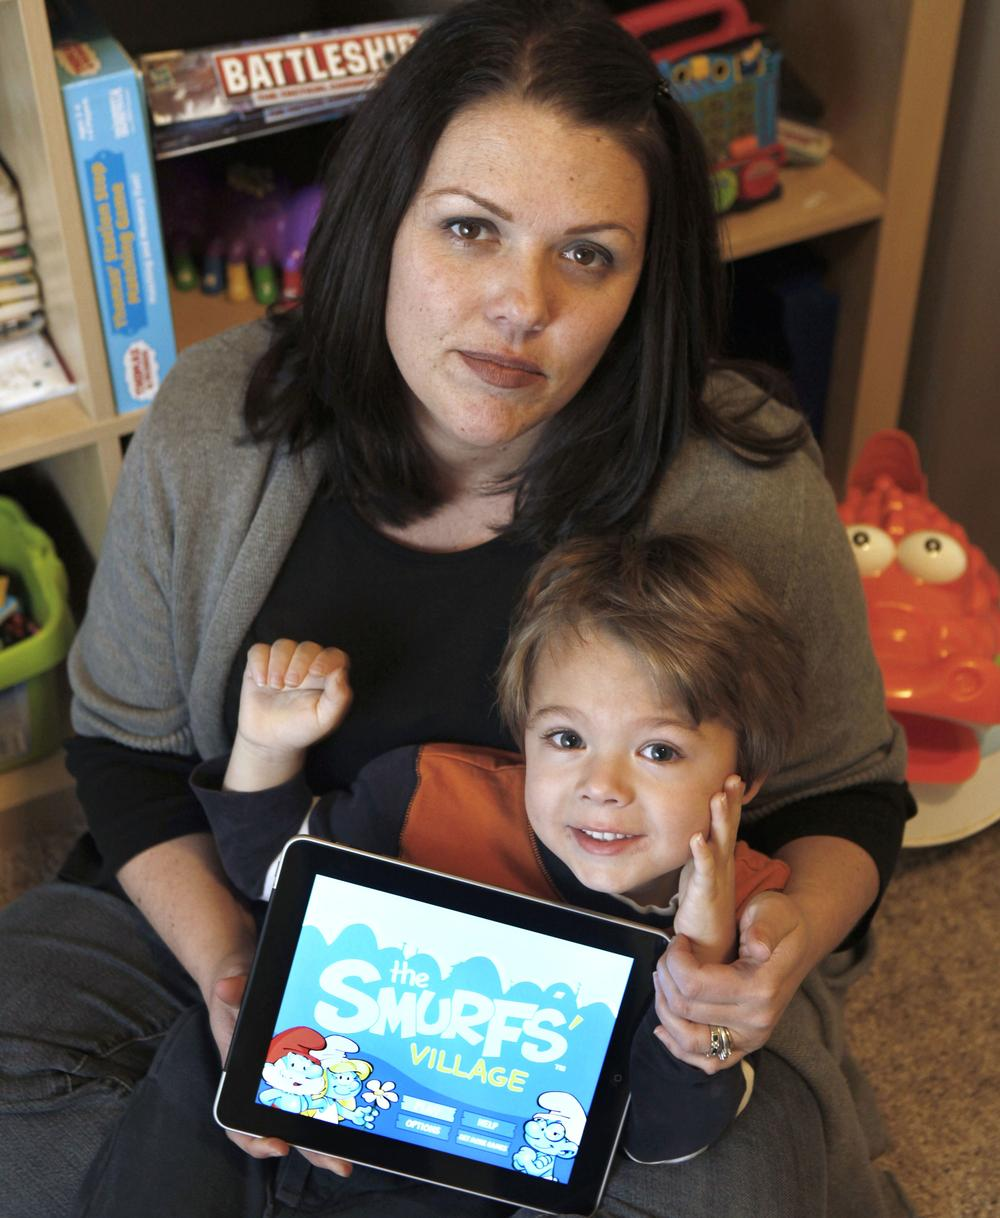 Kelly  Rummelhart and her son, Sawyer, 4, in their home in Gridley, Calif. (AP)